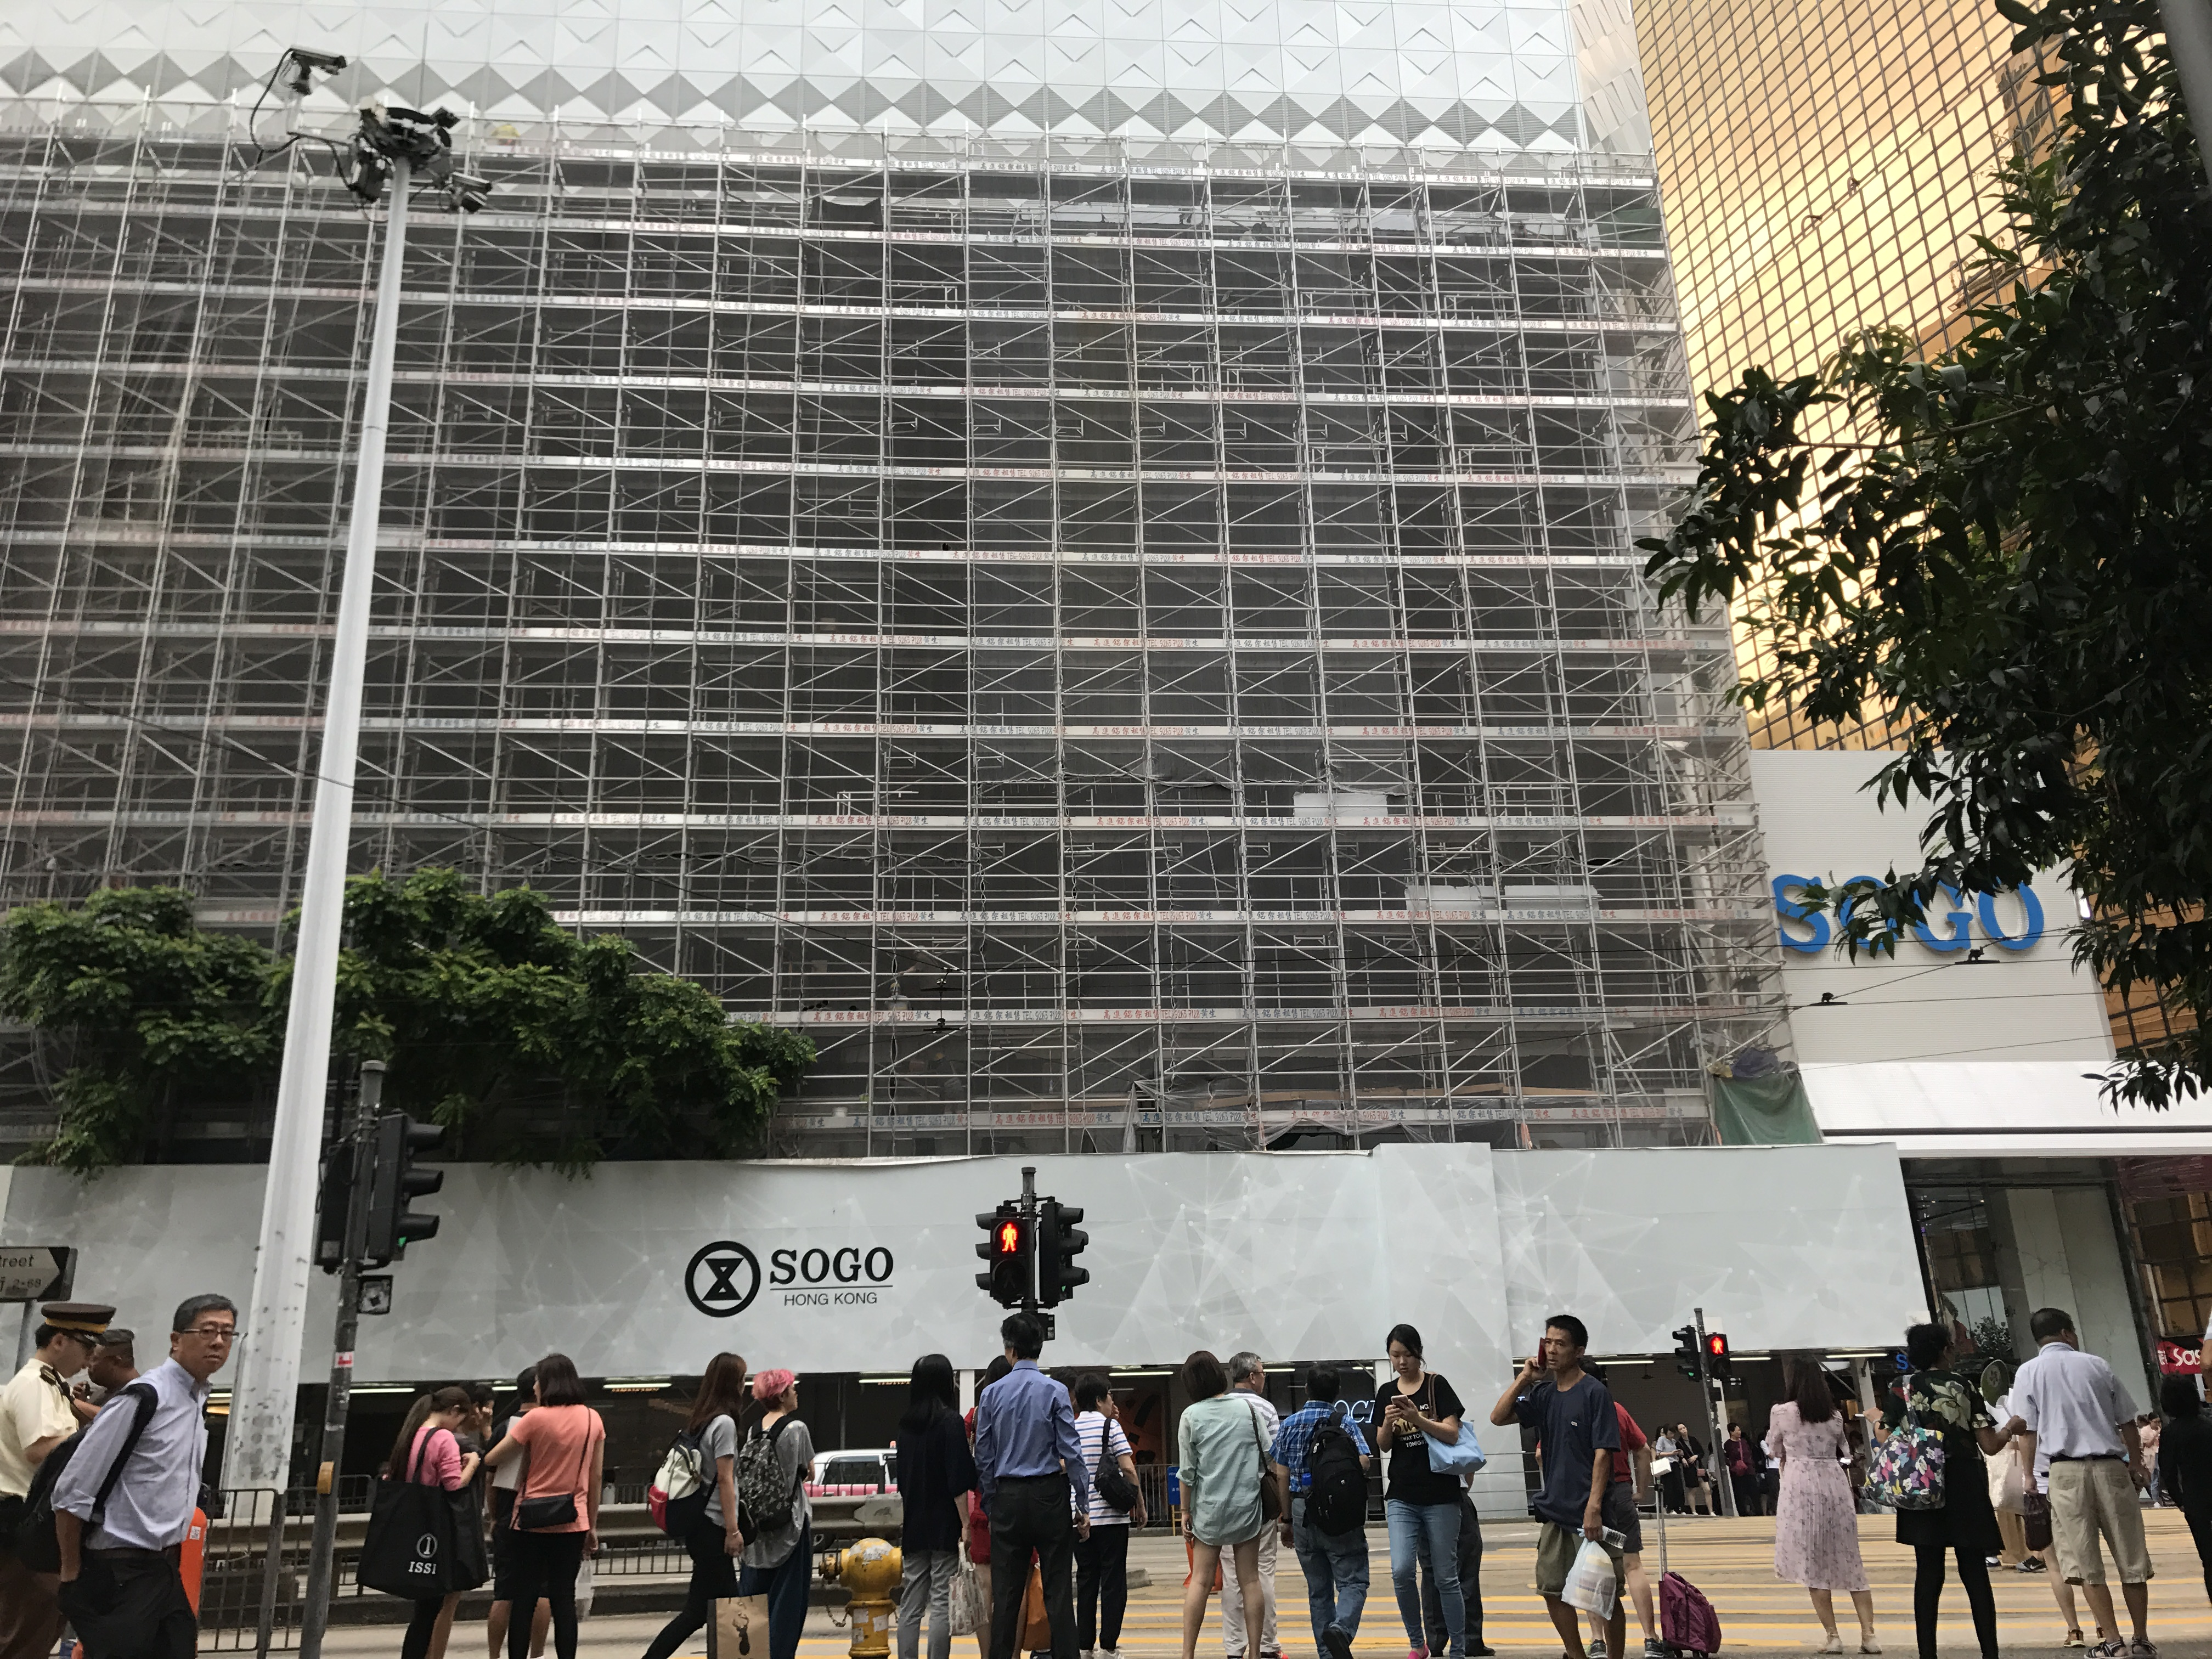 The Sogo department store screen under construction.